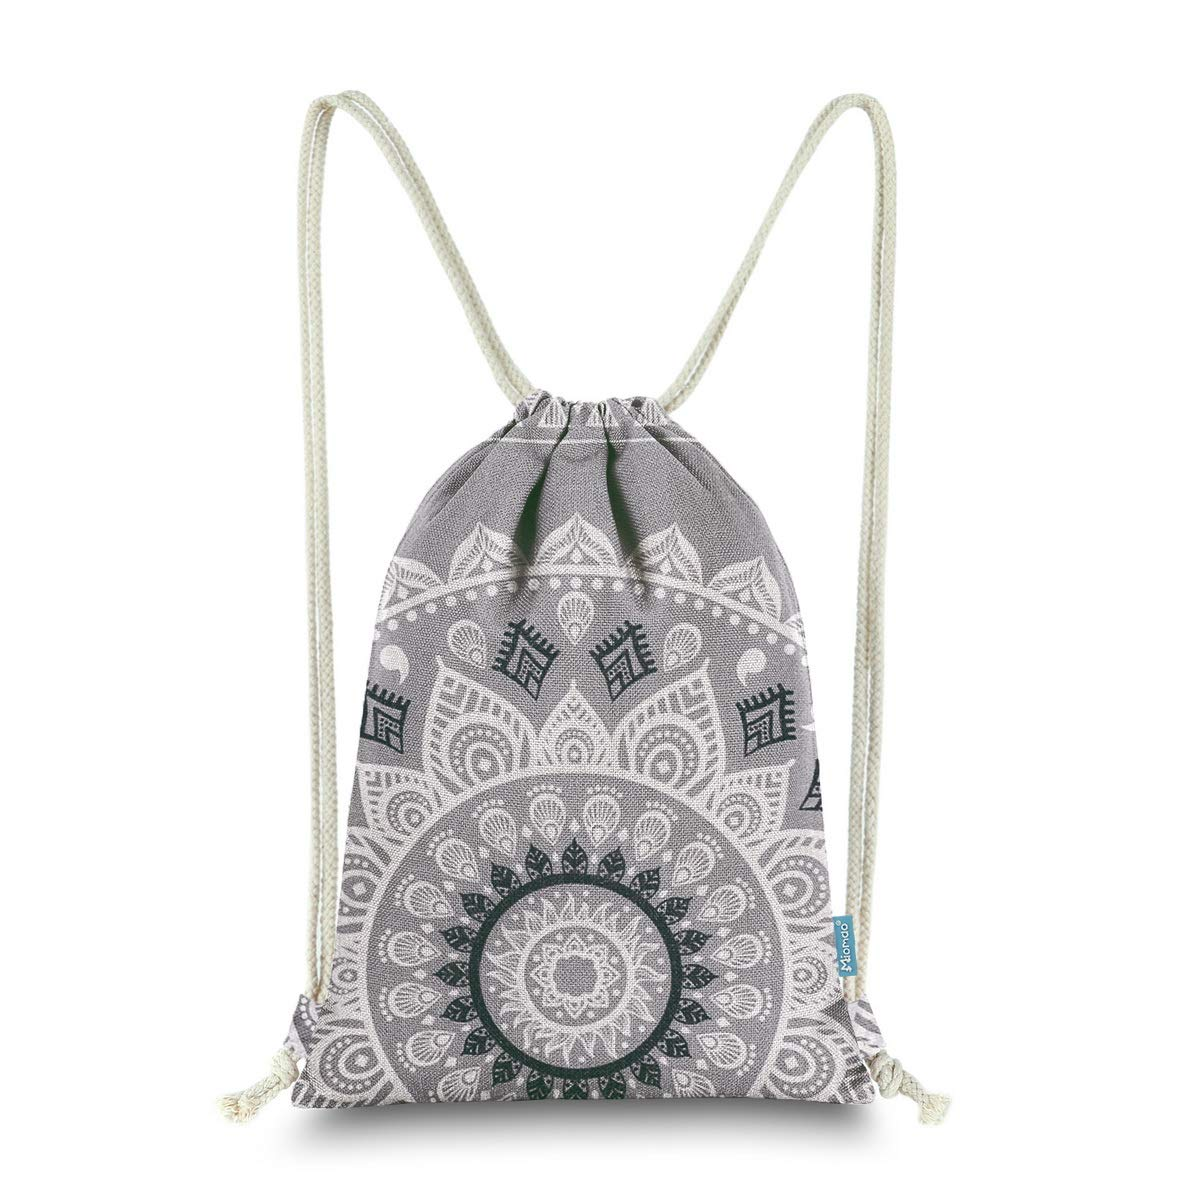 Miomao Drawstring Backpack Gym Sack Pack Mandala Style String Bag With  Pocket Canvas Sinch Sack Sport Cinch Pack Christmas Gift Bags Beach  Rucksack 13 X 18 ... fe7c1f5ed7